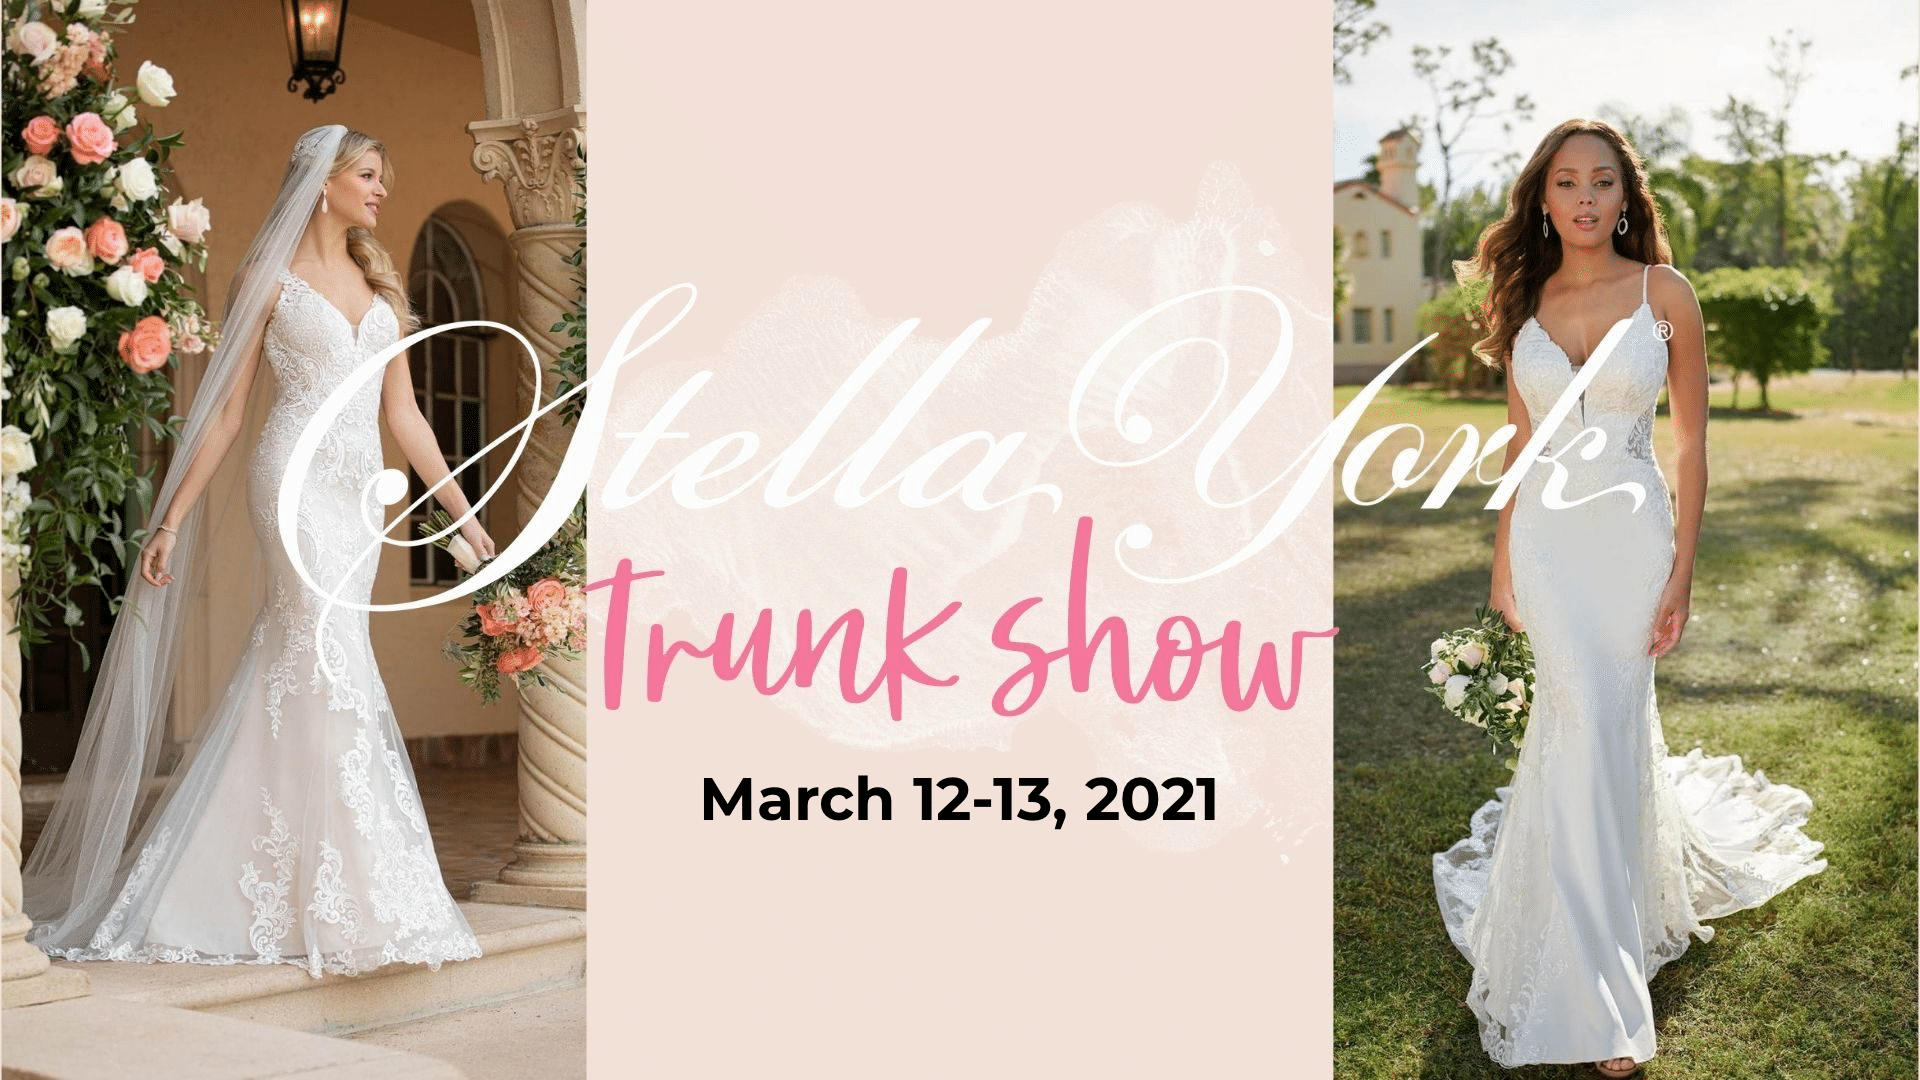 Stella York Trunk Show at Lily Rose Bridal March 12-13, 2021